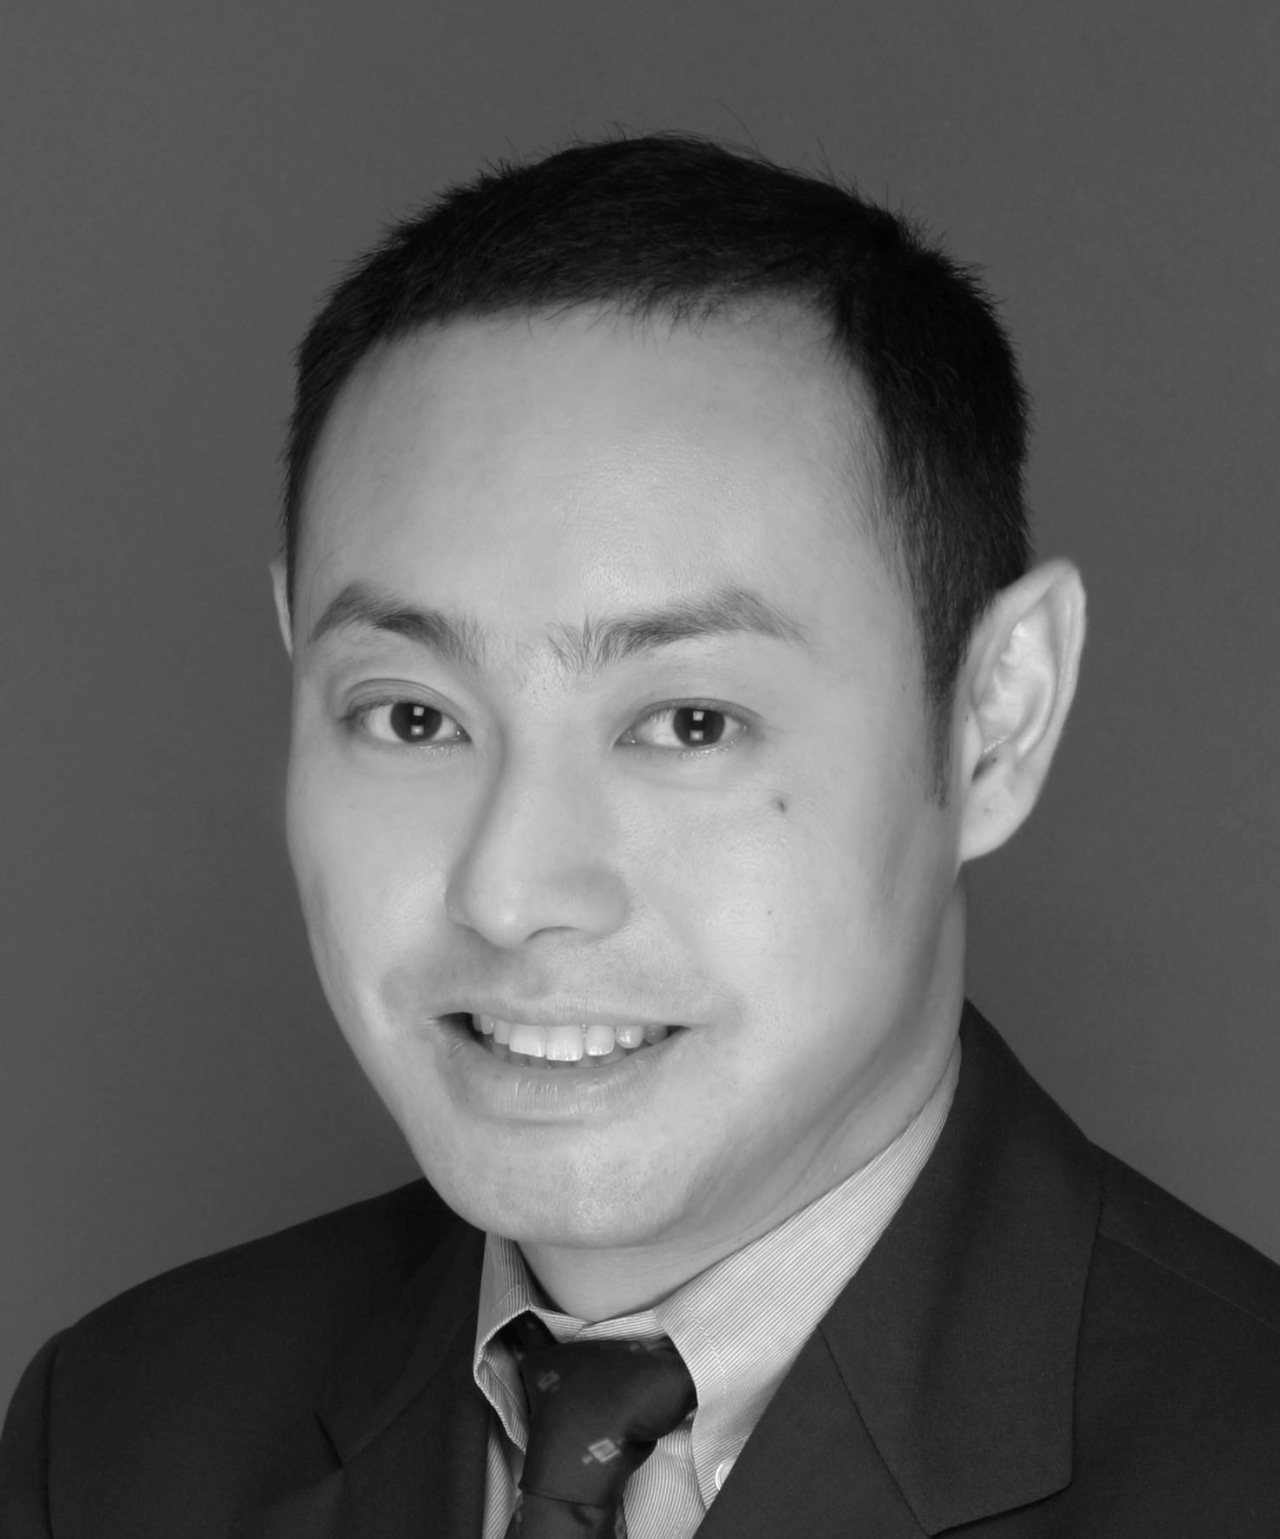 Leslie Chua, executive director Asia, IPD black and white, business executive, businessperson, cheek, chin, executive officer, eyebrow, face, forehead, gentleman, jaw, monochrome, monochrome photography, nose, person, photograph, photography, portrait, portrait photography, professional, smile, white collar worker, black, gray